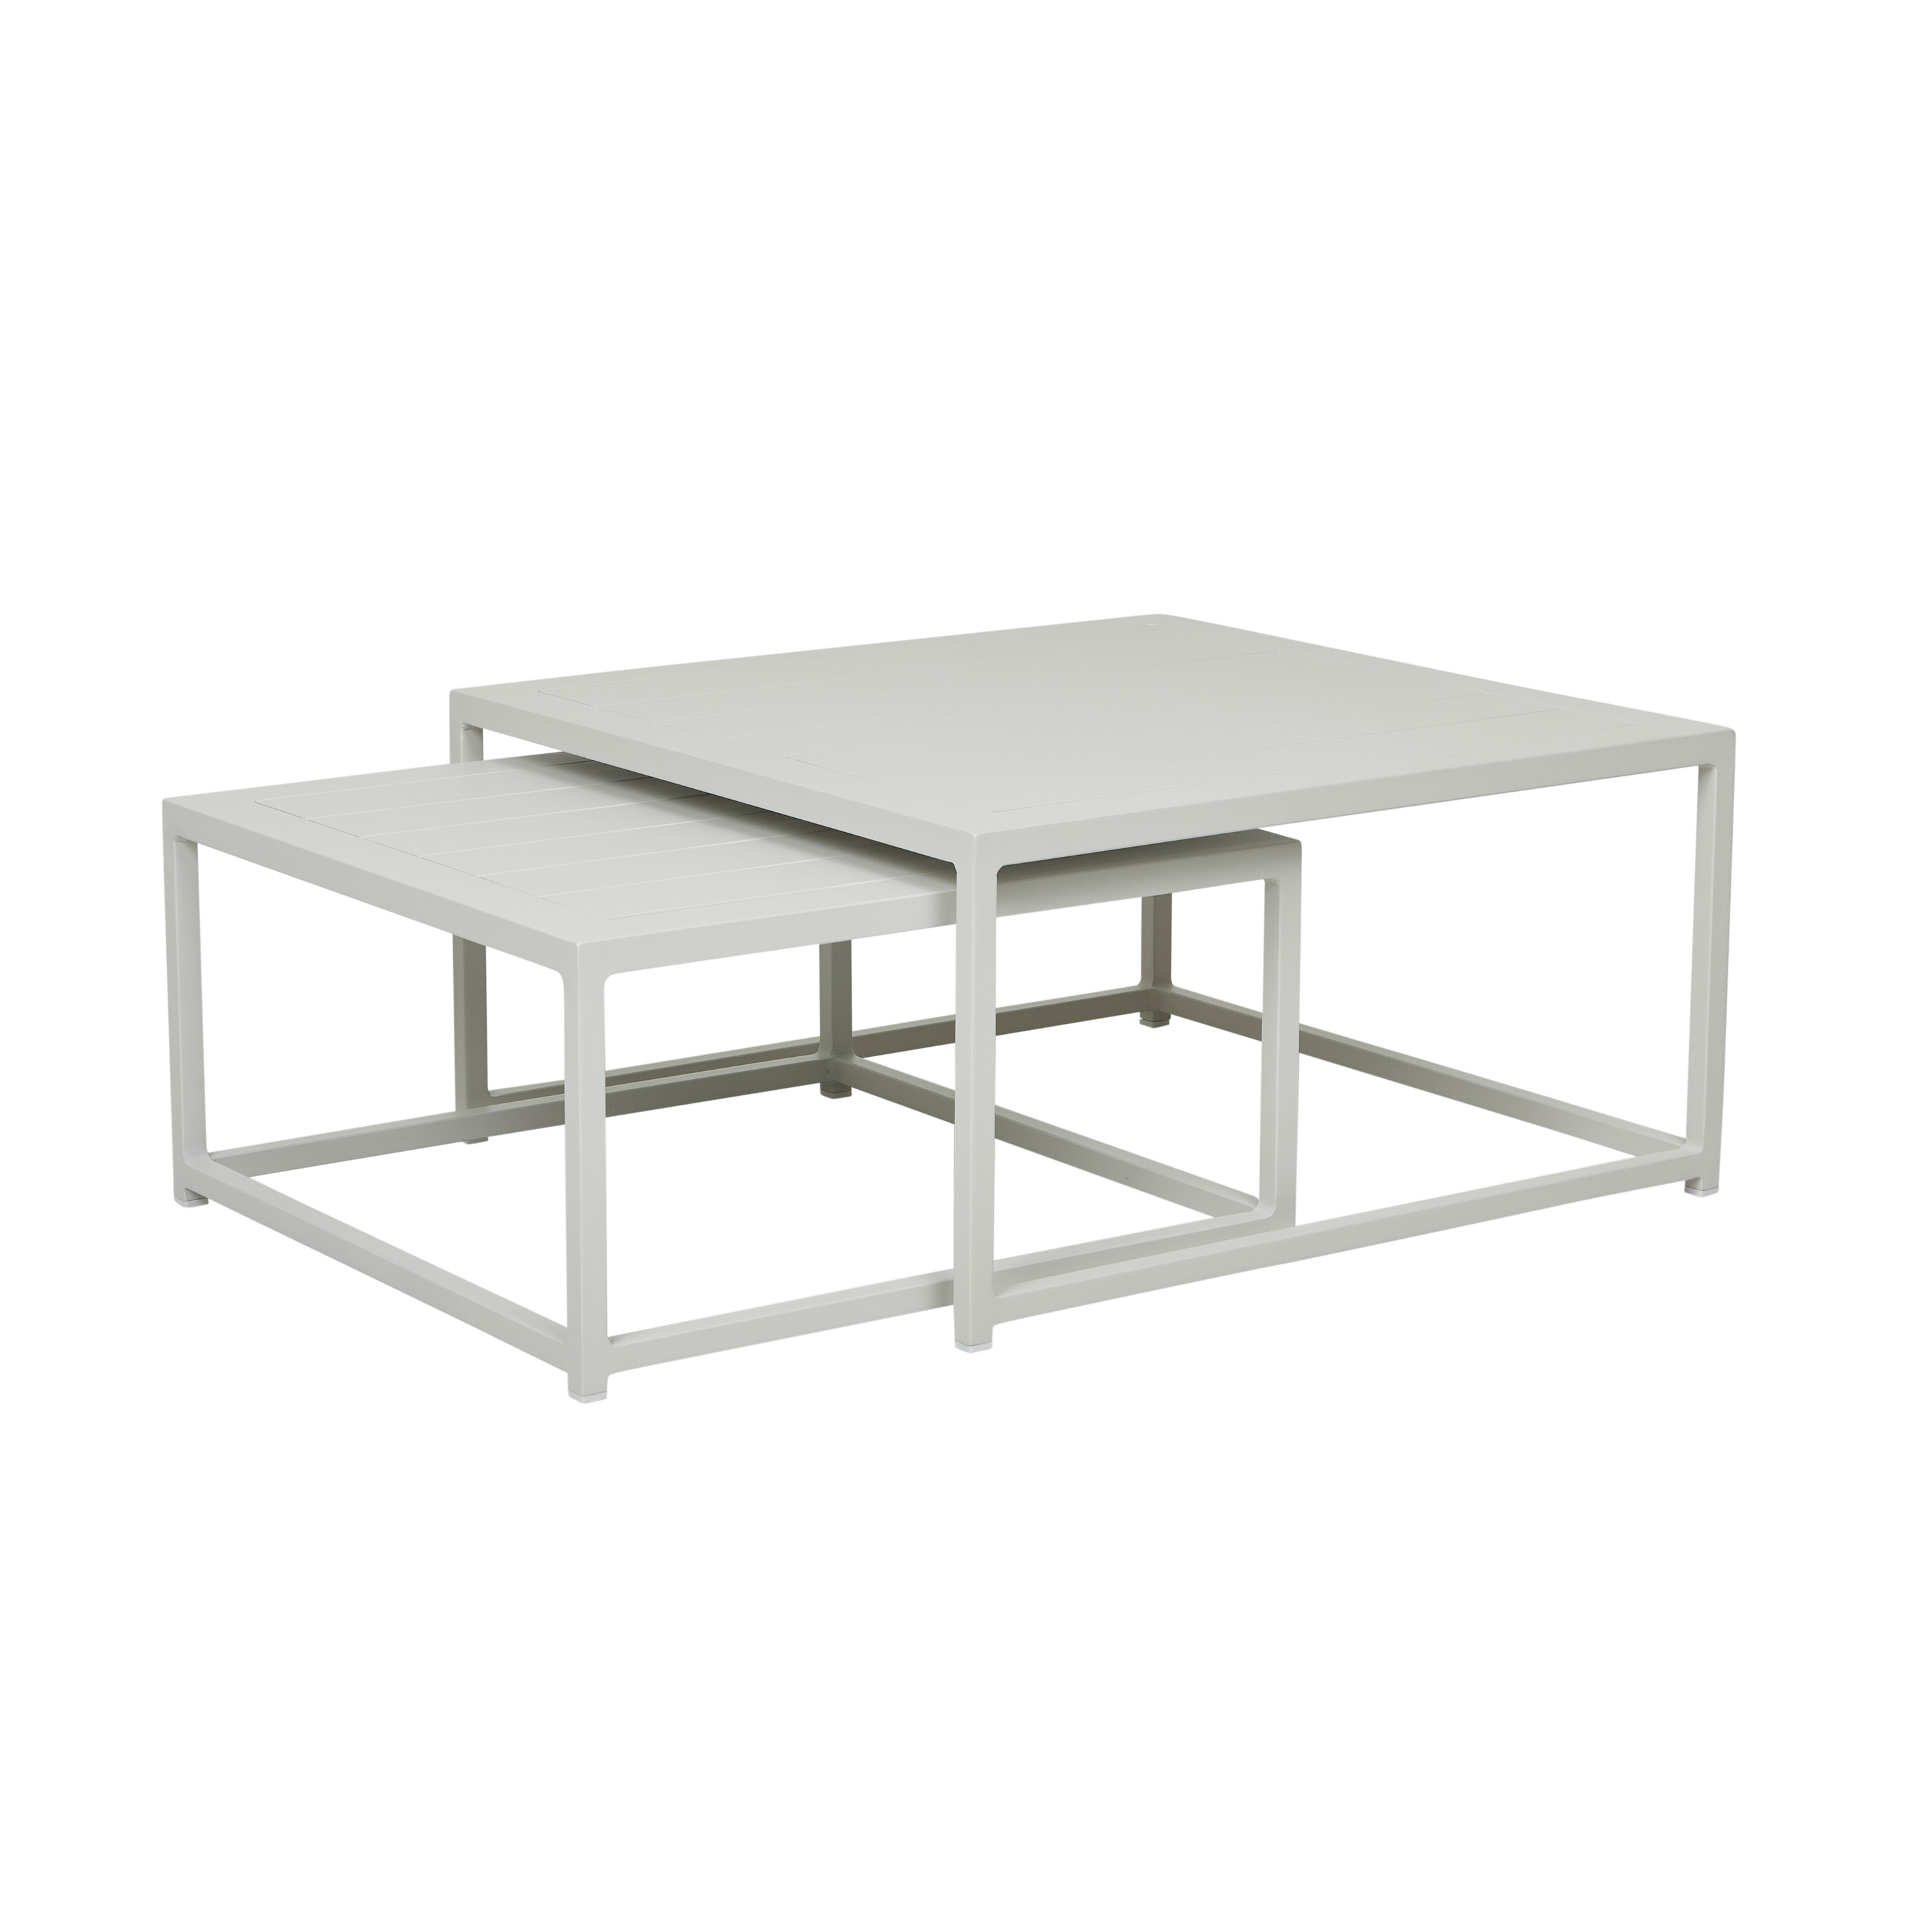 Furniture Hero-Images Coffee-Side-Tables-and-Trolleys aruba-square-nest-two-coffee-tables-02